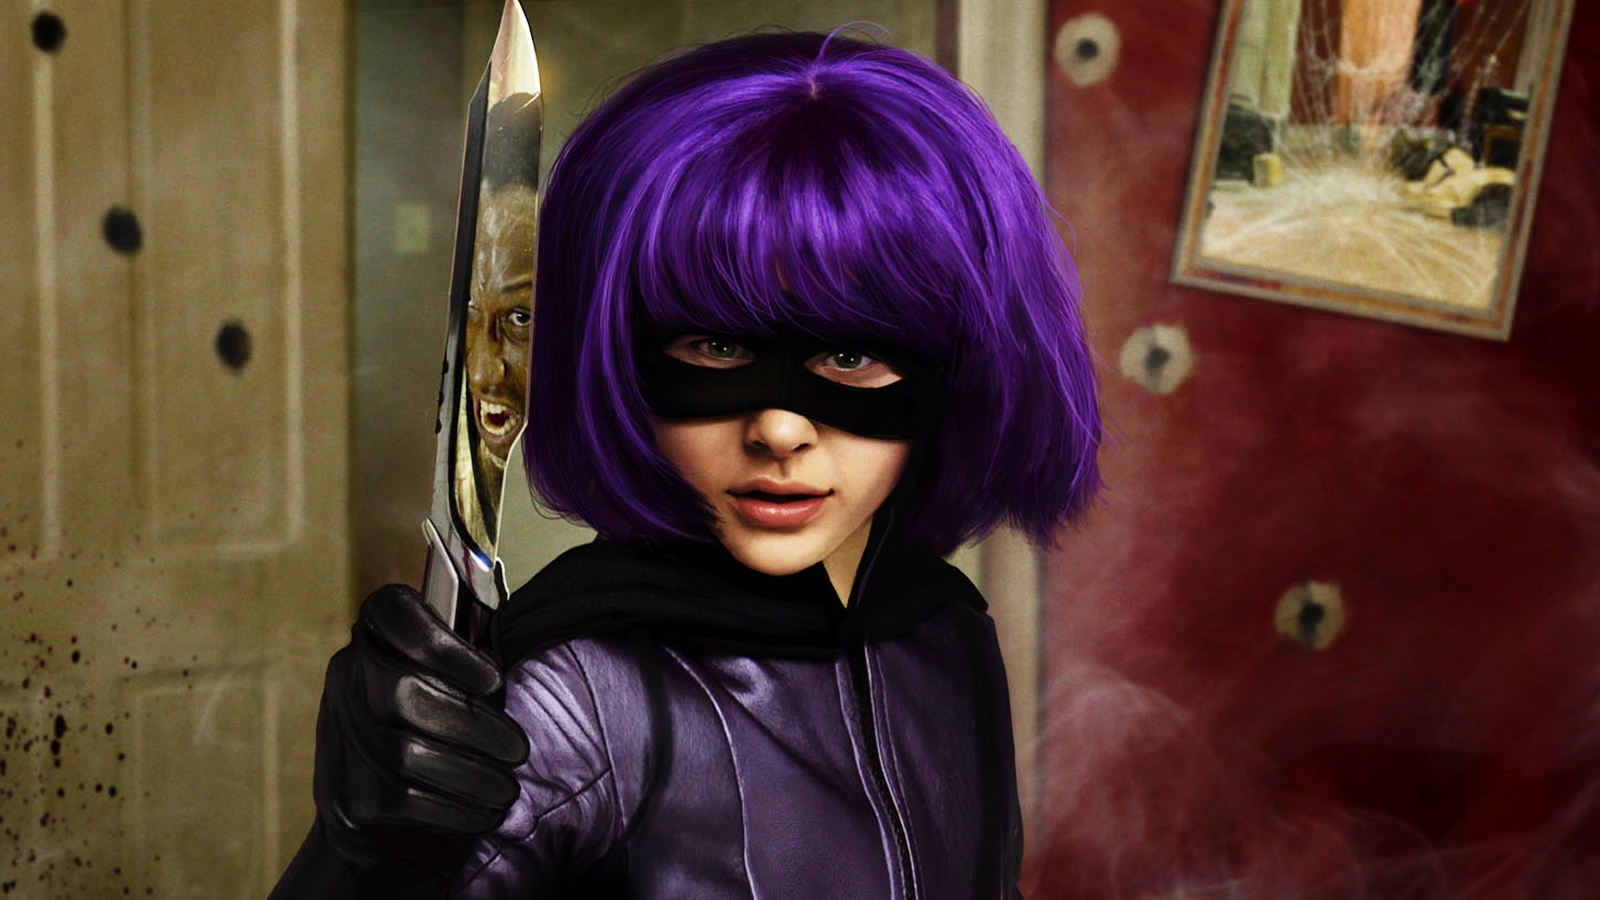 Hit Girl in Kick Ass 1830.66 Kb